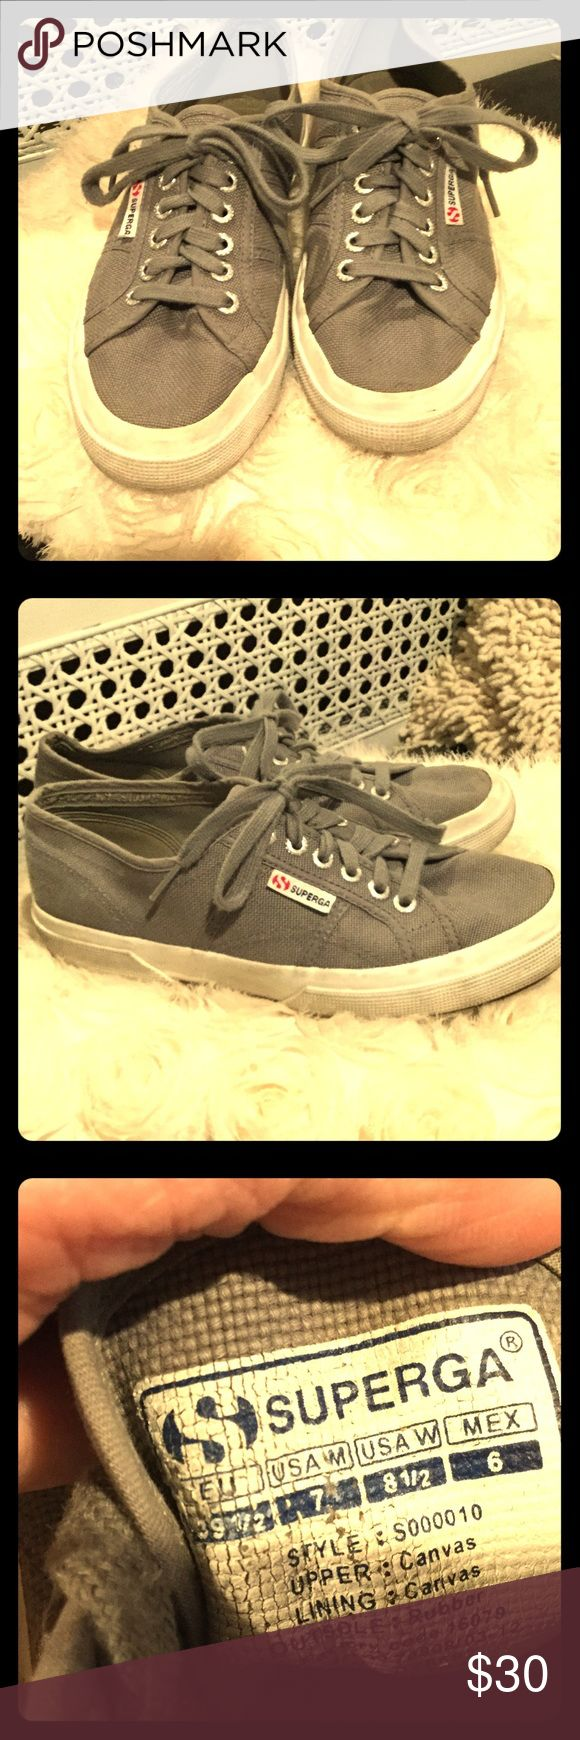 Women's Superga Classic COTU 2750 Sneakers in gray Women's Superga Classic COTU 2750 Sneakers in charcoal gray size 8.5 in ladies shoes.  My daughter wears shoes size 8/8.5/9 depending on shoe type. Great condition.  Comes from clean non-smoking home. Superga Shoes Sneakers